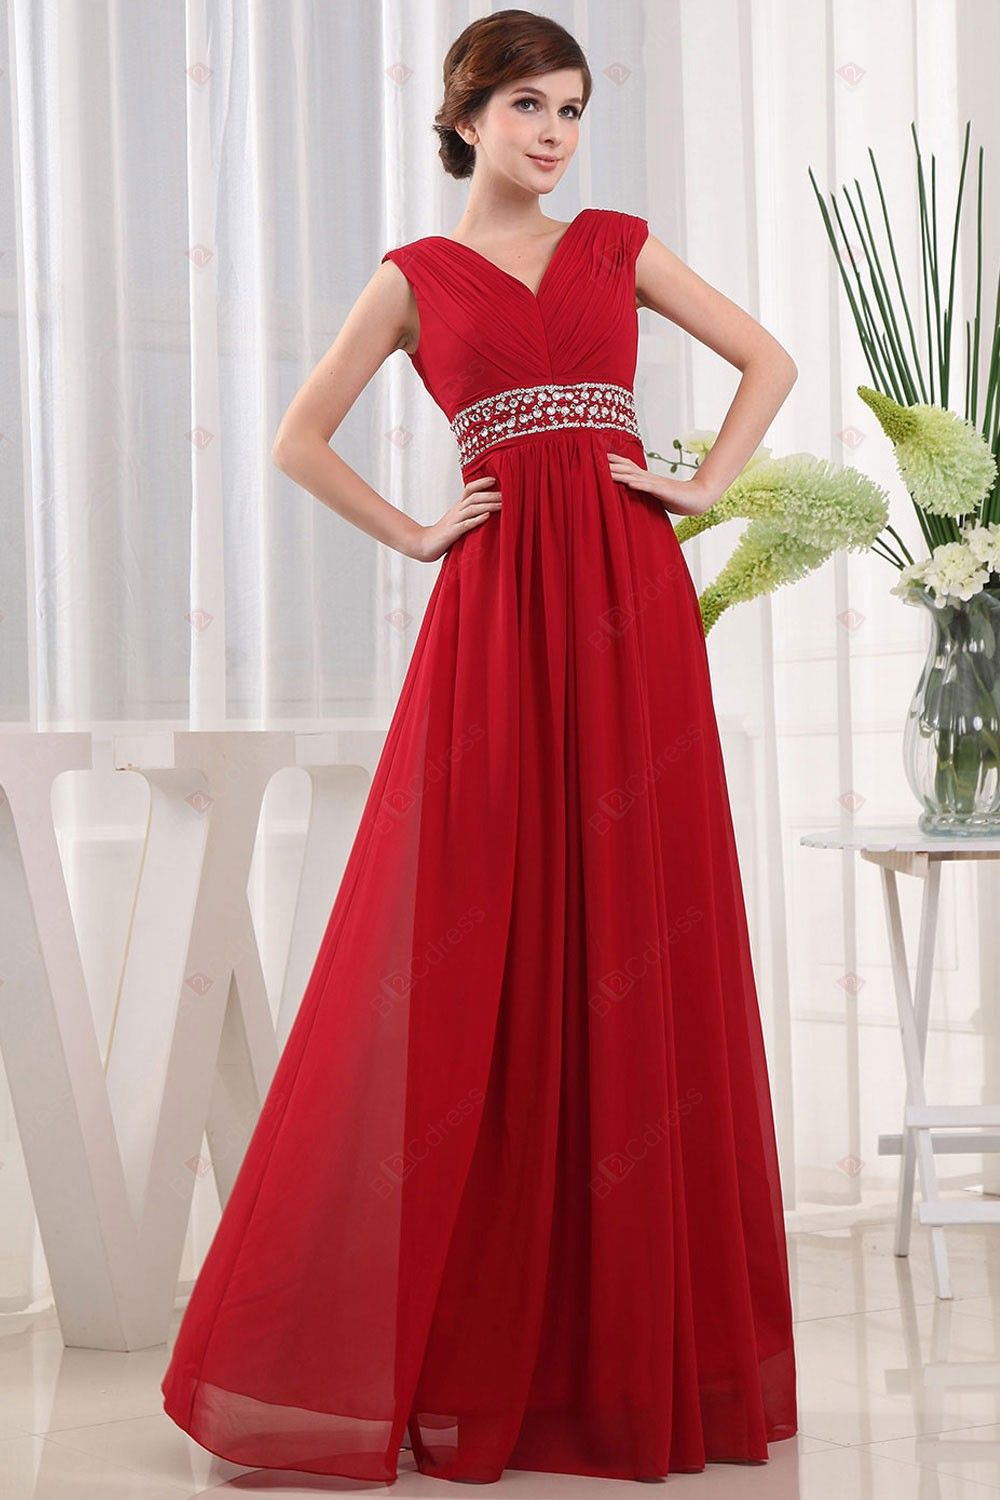 Prom dress stores in springfield mo color dress pinterest prom dress stores in springfield mo ombrellifo Image collections